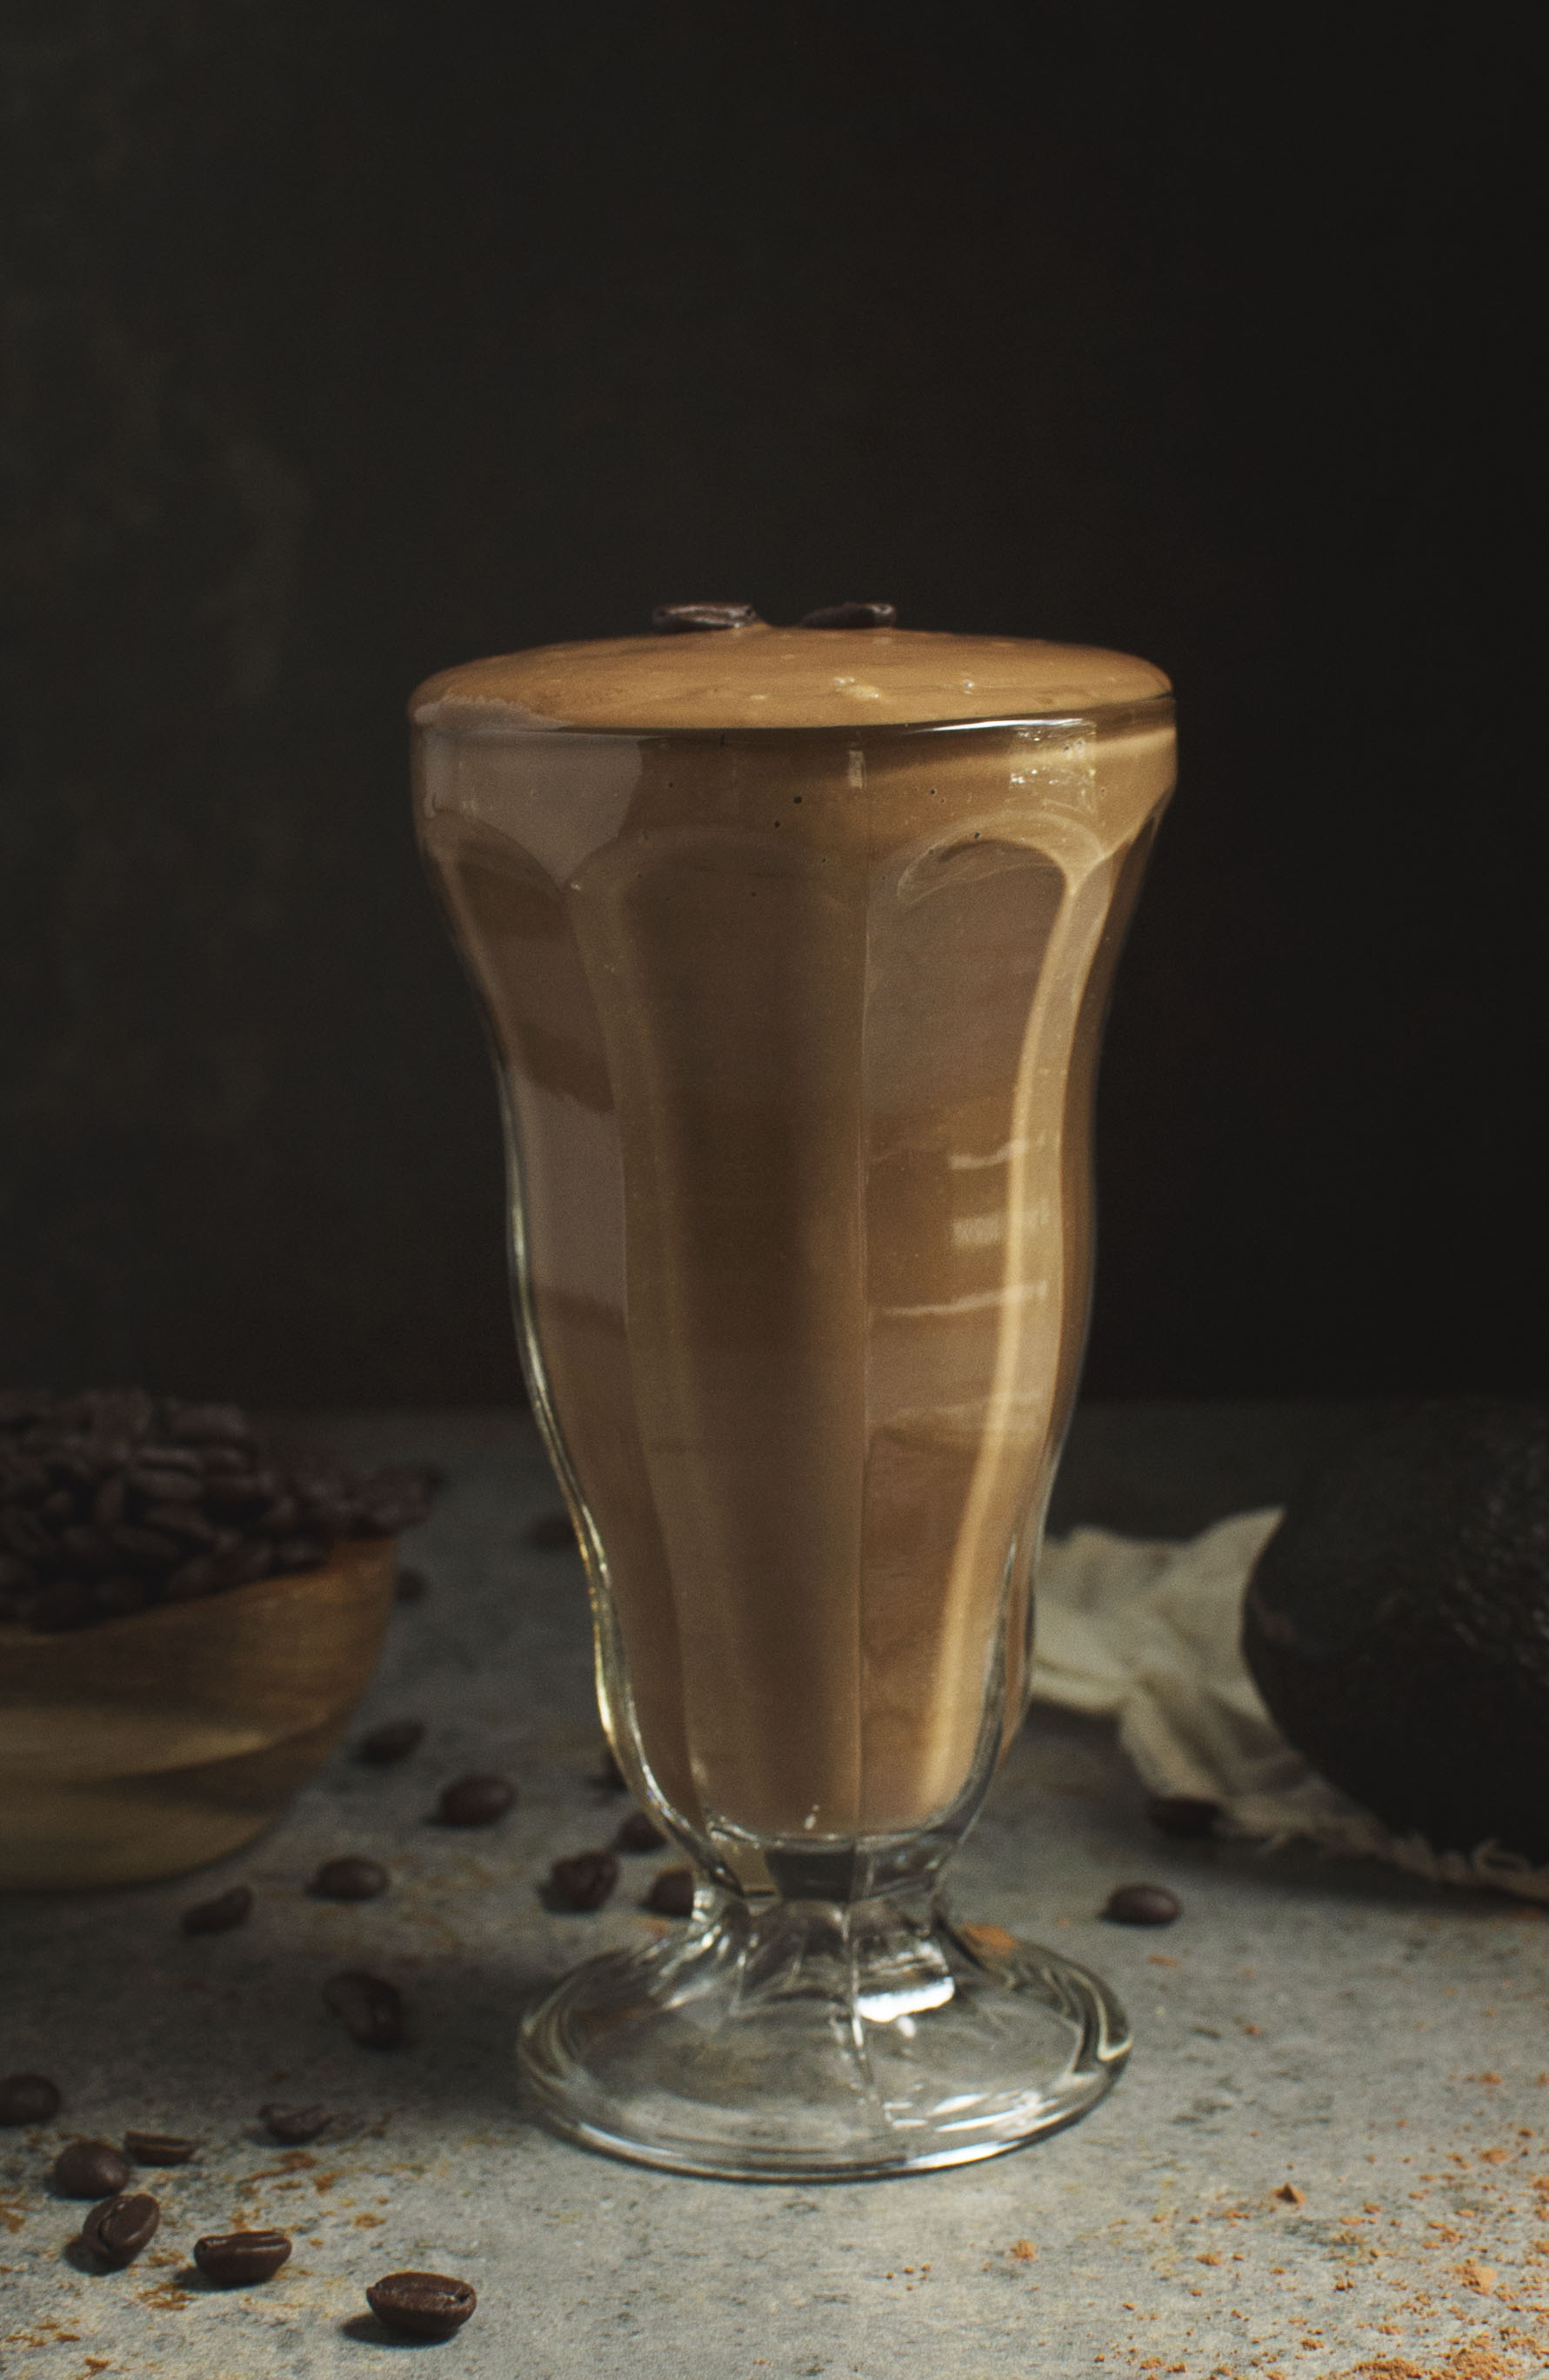 Low-Carb 5 Minute Mocha Smoothie